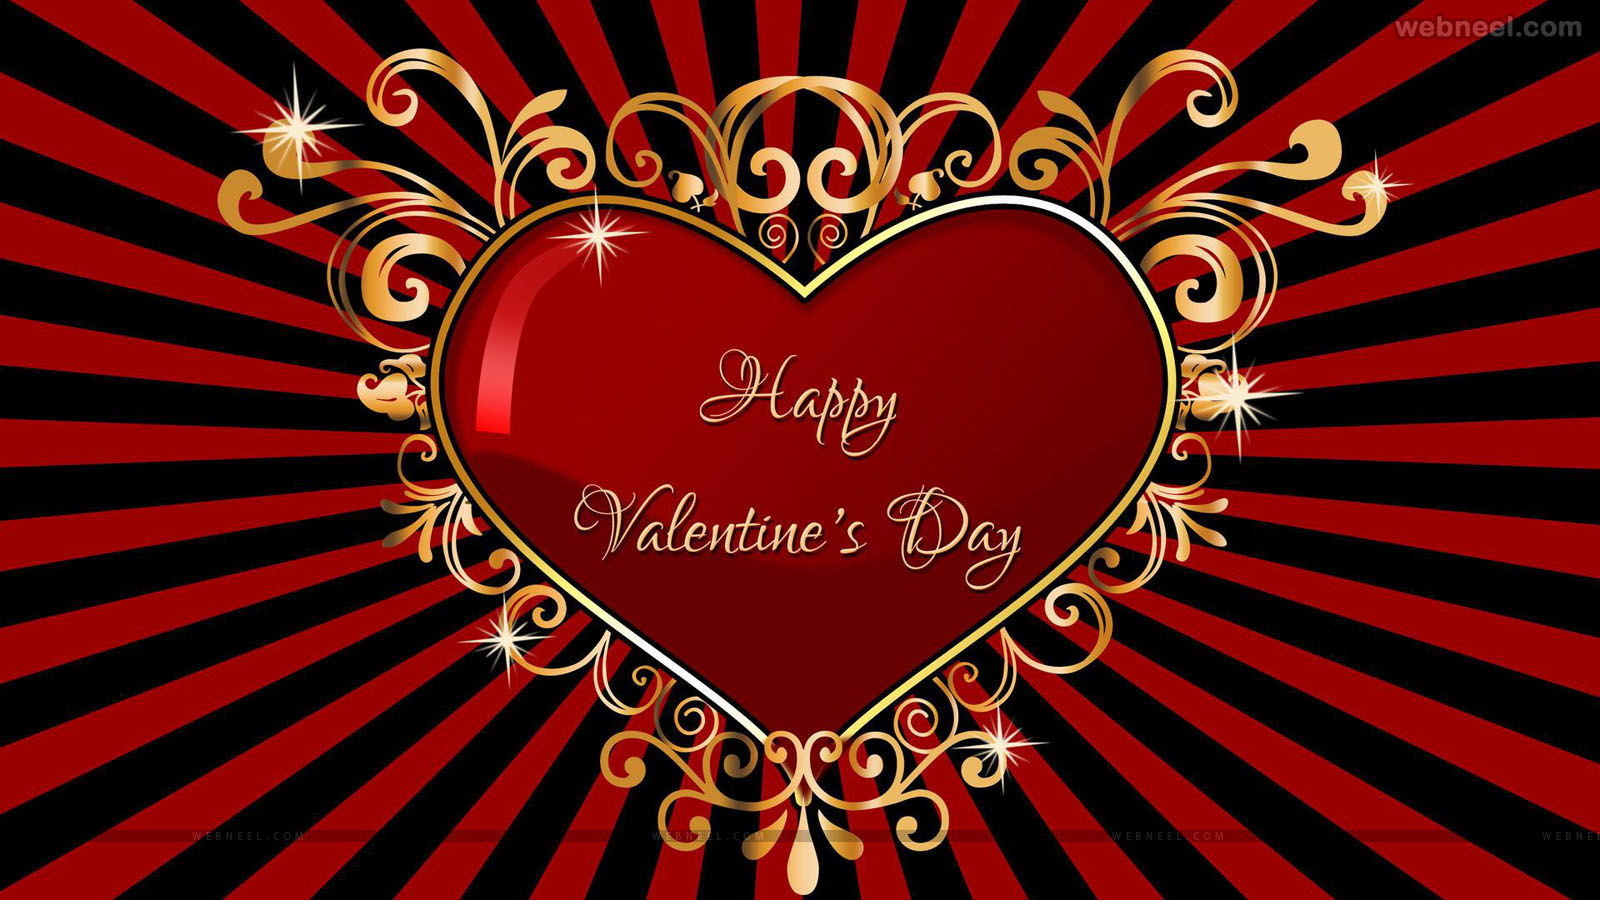 happy valentines day heart wallpaper - hd wallpaper